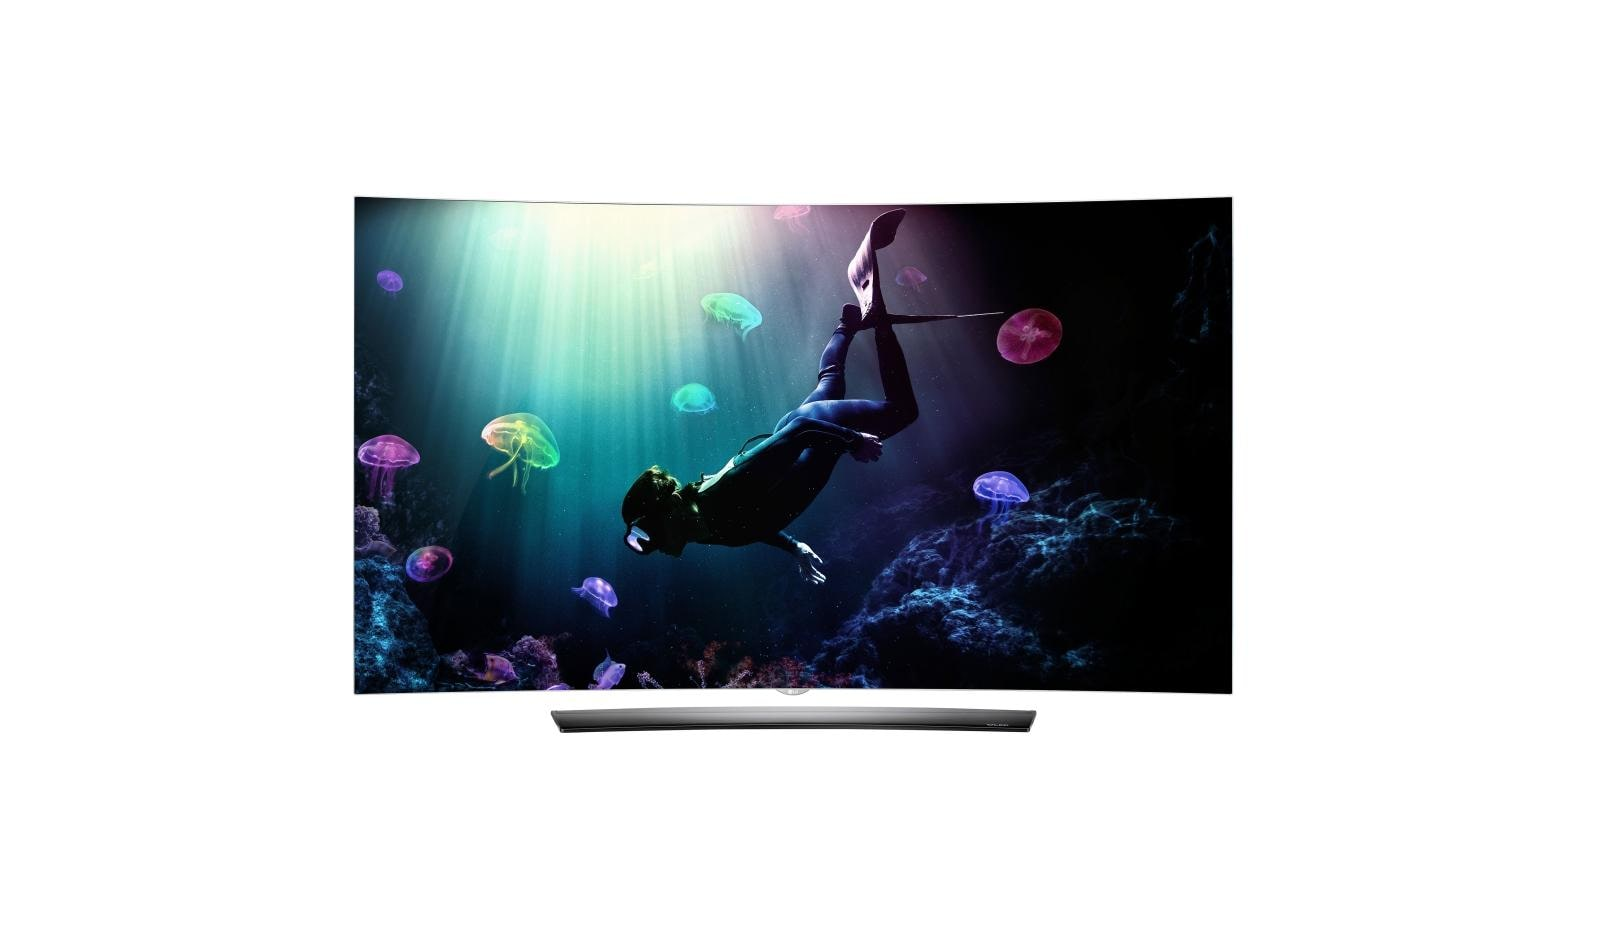 278130657acca C6 Curved OLED 4K HDR Smart TV - 55